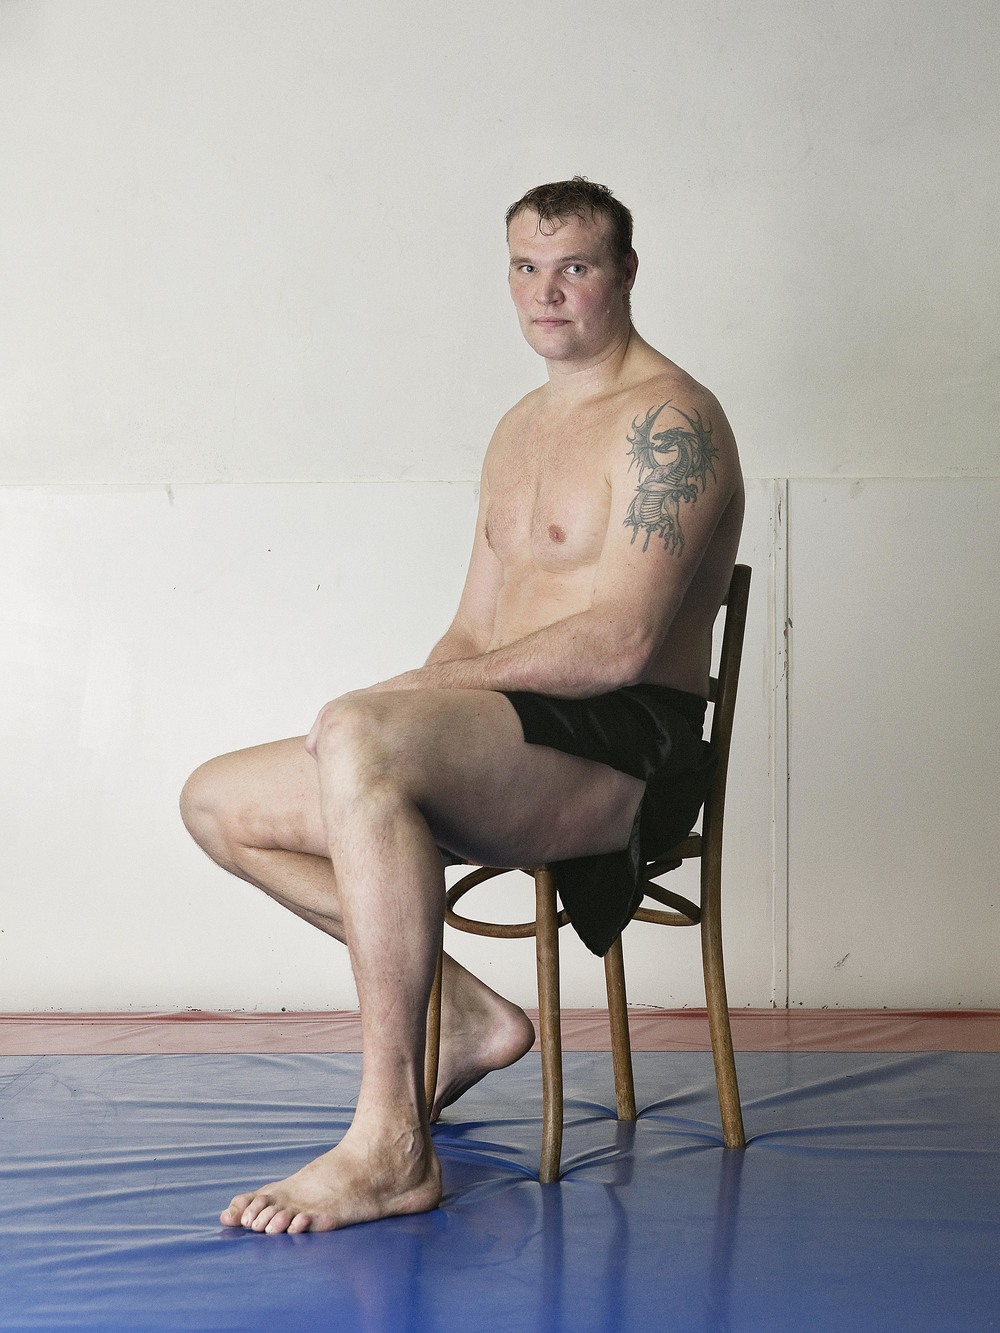 Semmy Schilt aka Hightower